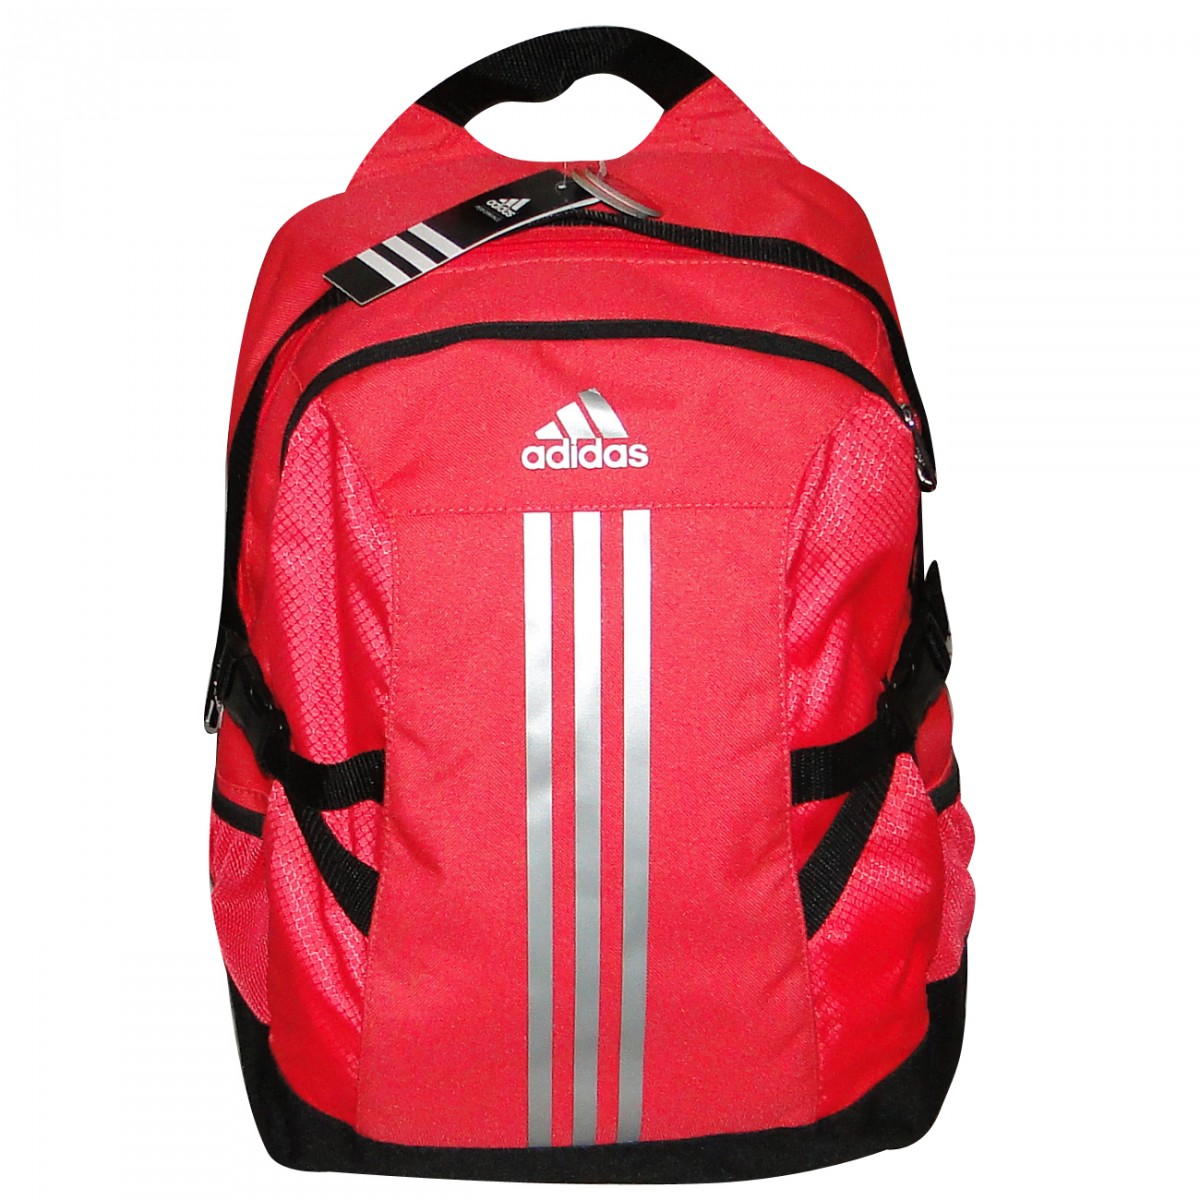 Power Adidas Bp Adidas Bp Adidas Ii Mochila Bp Power Mochila Ii Mochila Power 8vmn0wNO